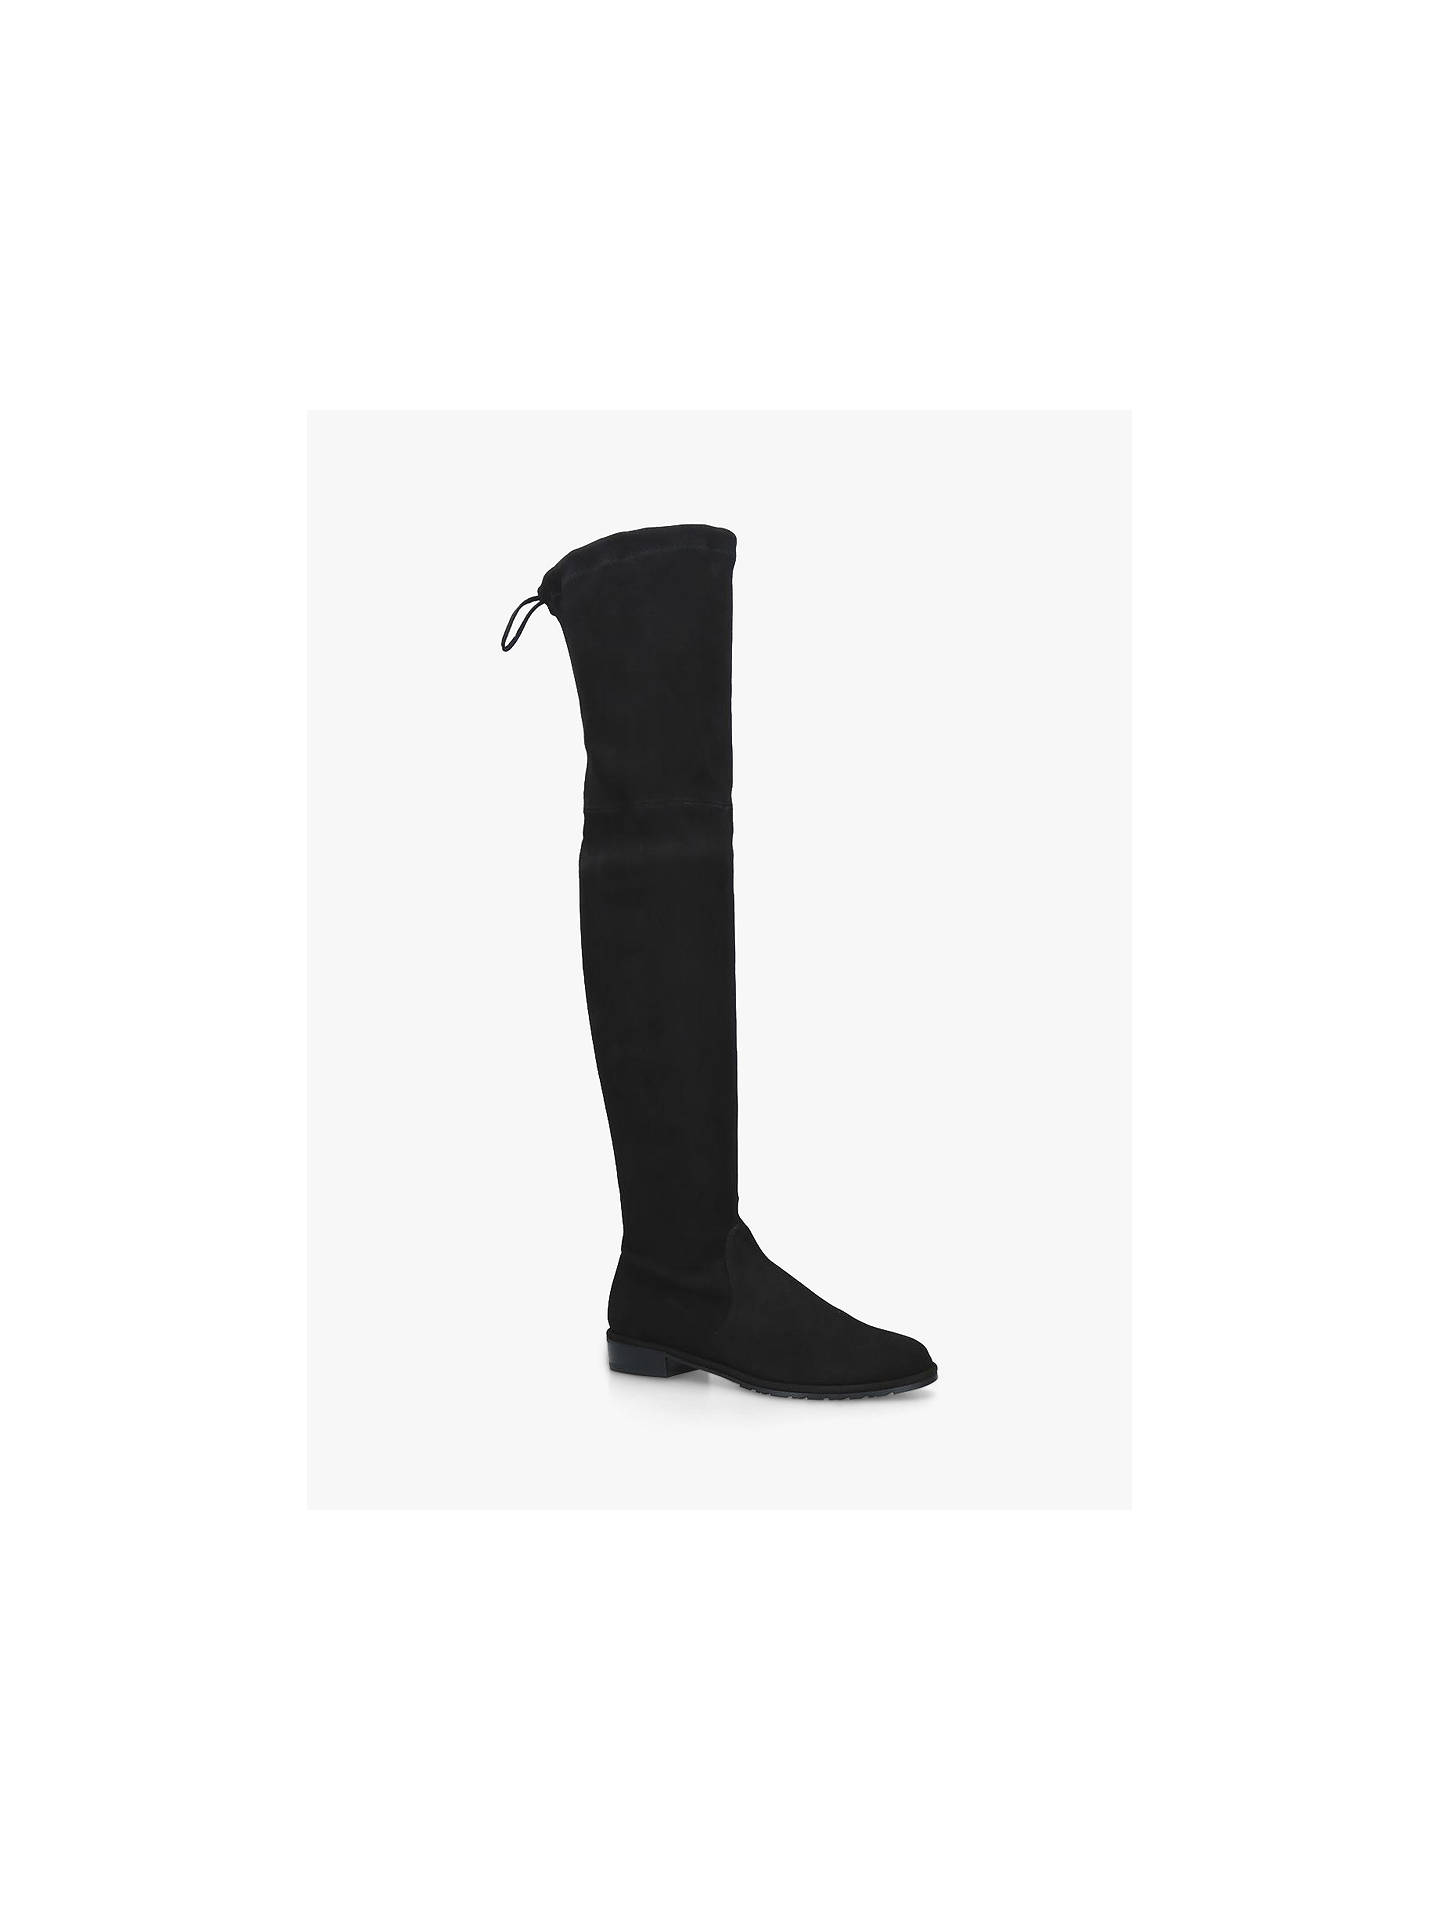 db596b7b5a8 ... Buy Stuart Weitzman Lowland Over The Knee Boots